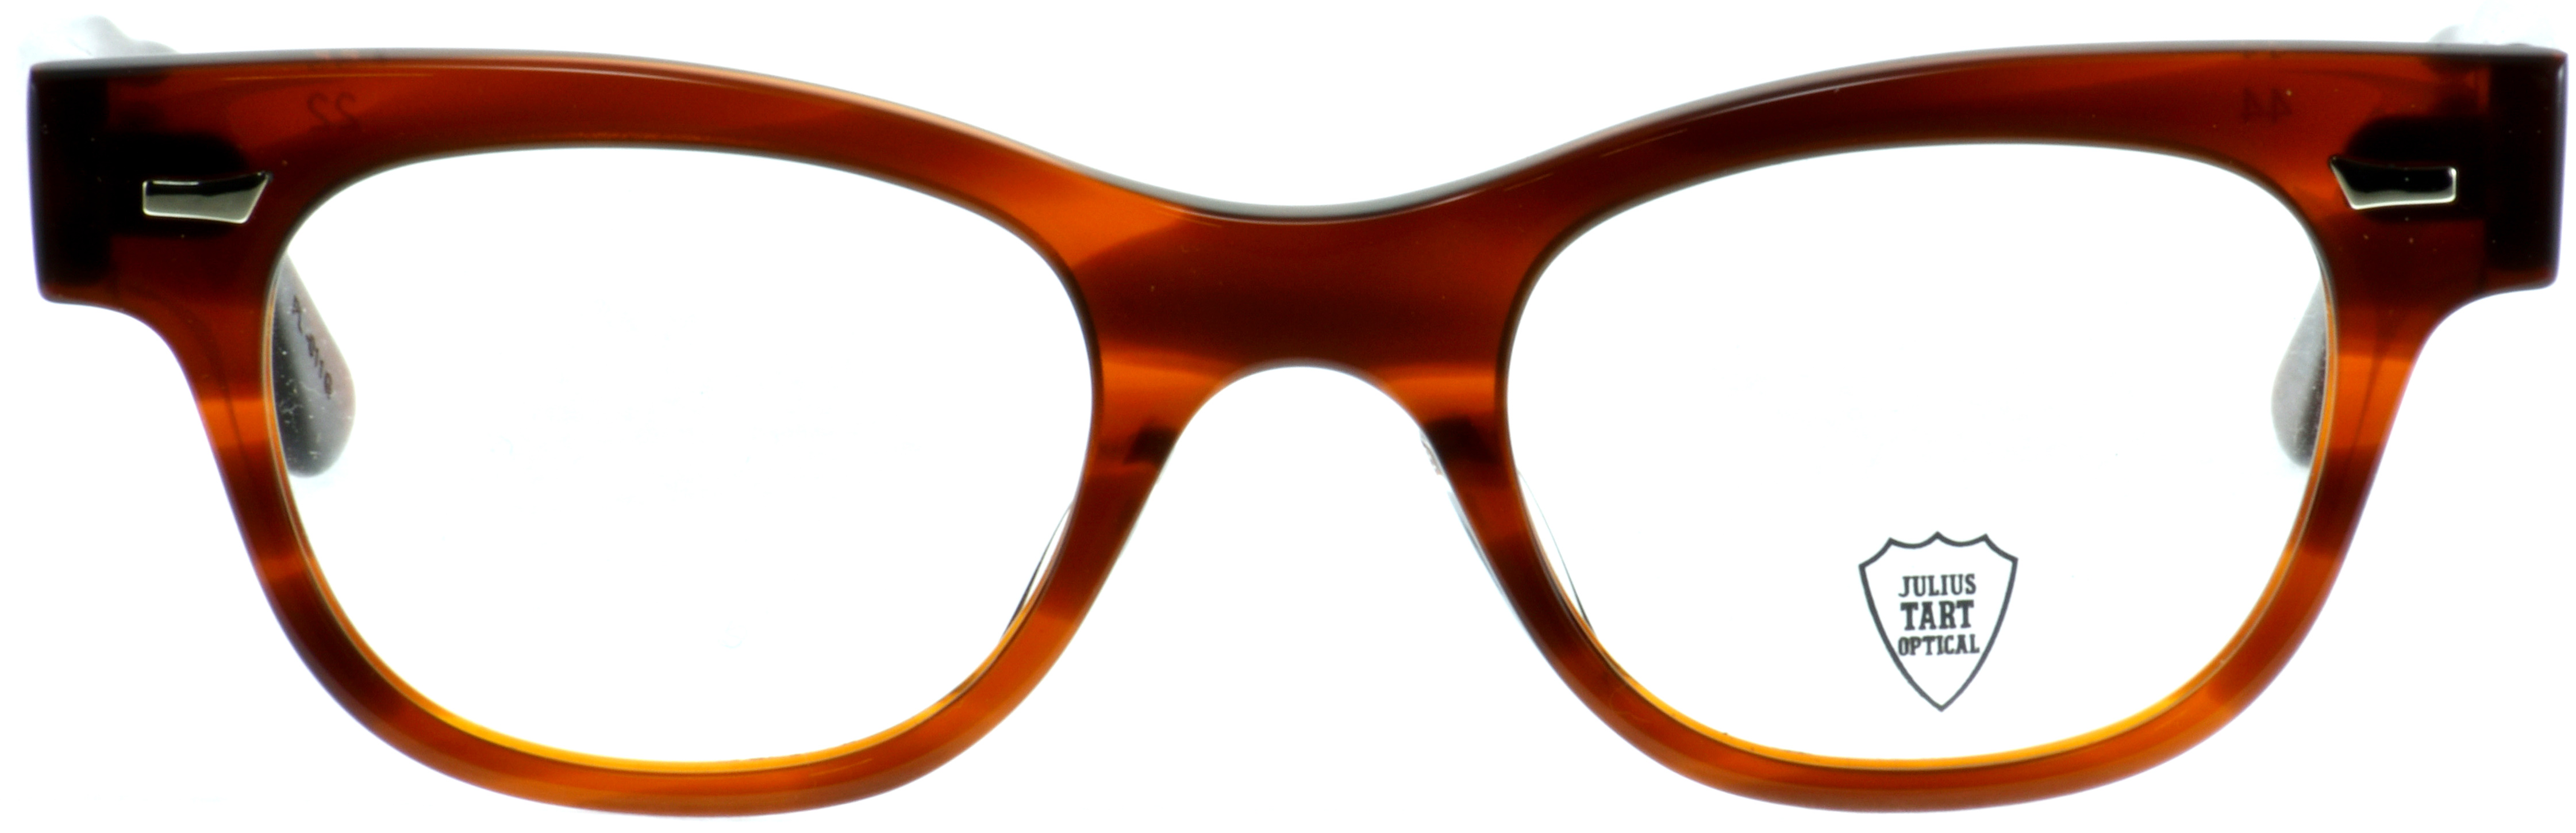 JULIUS TART OPTICAL COUNTDOWN Amber_Clear 1010441301_00014_00022